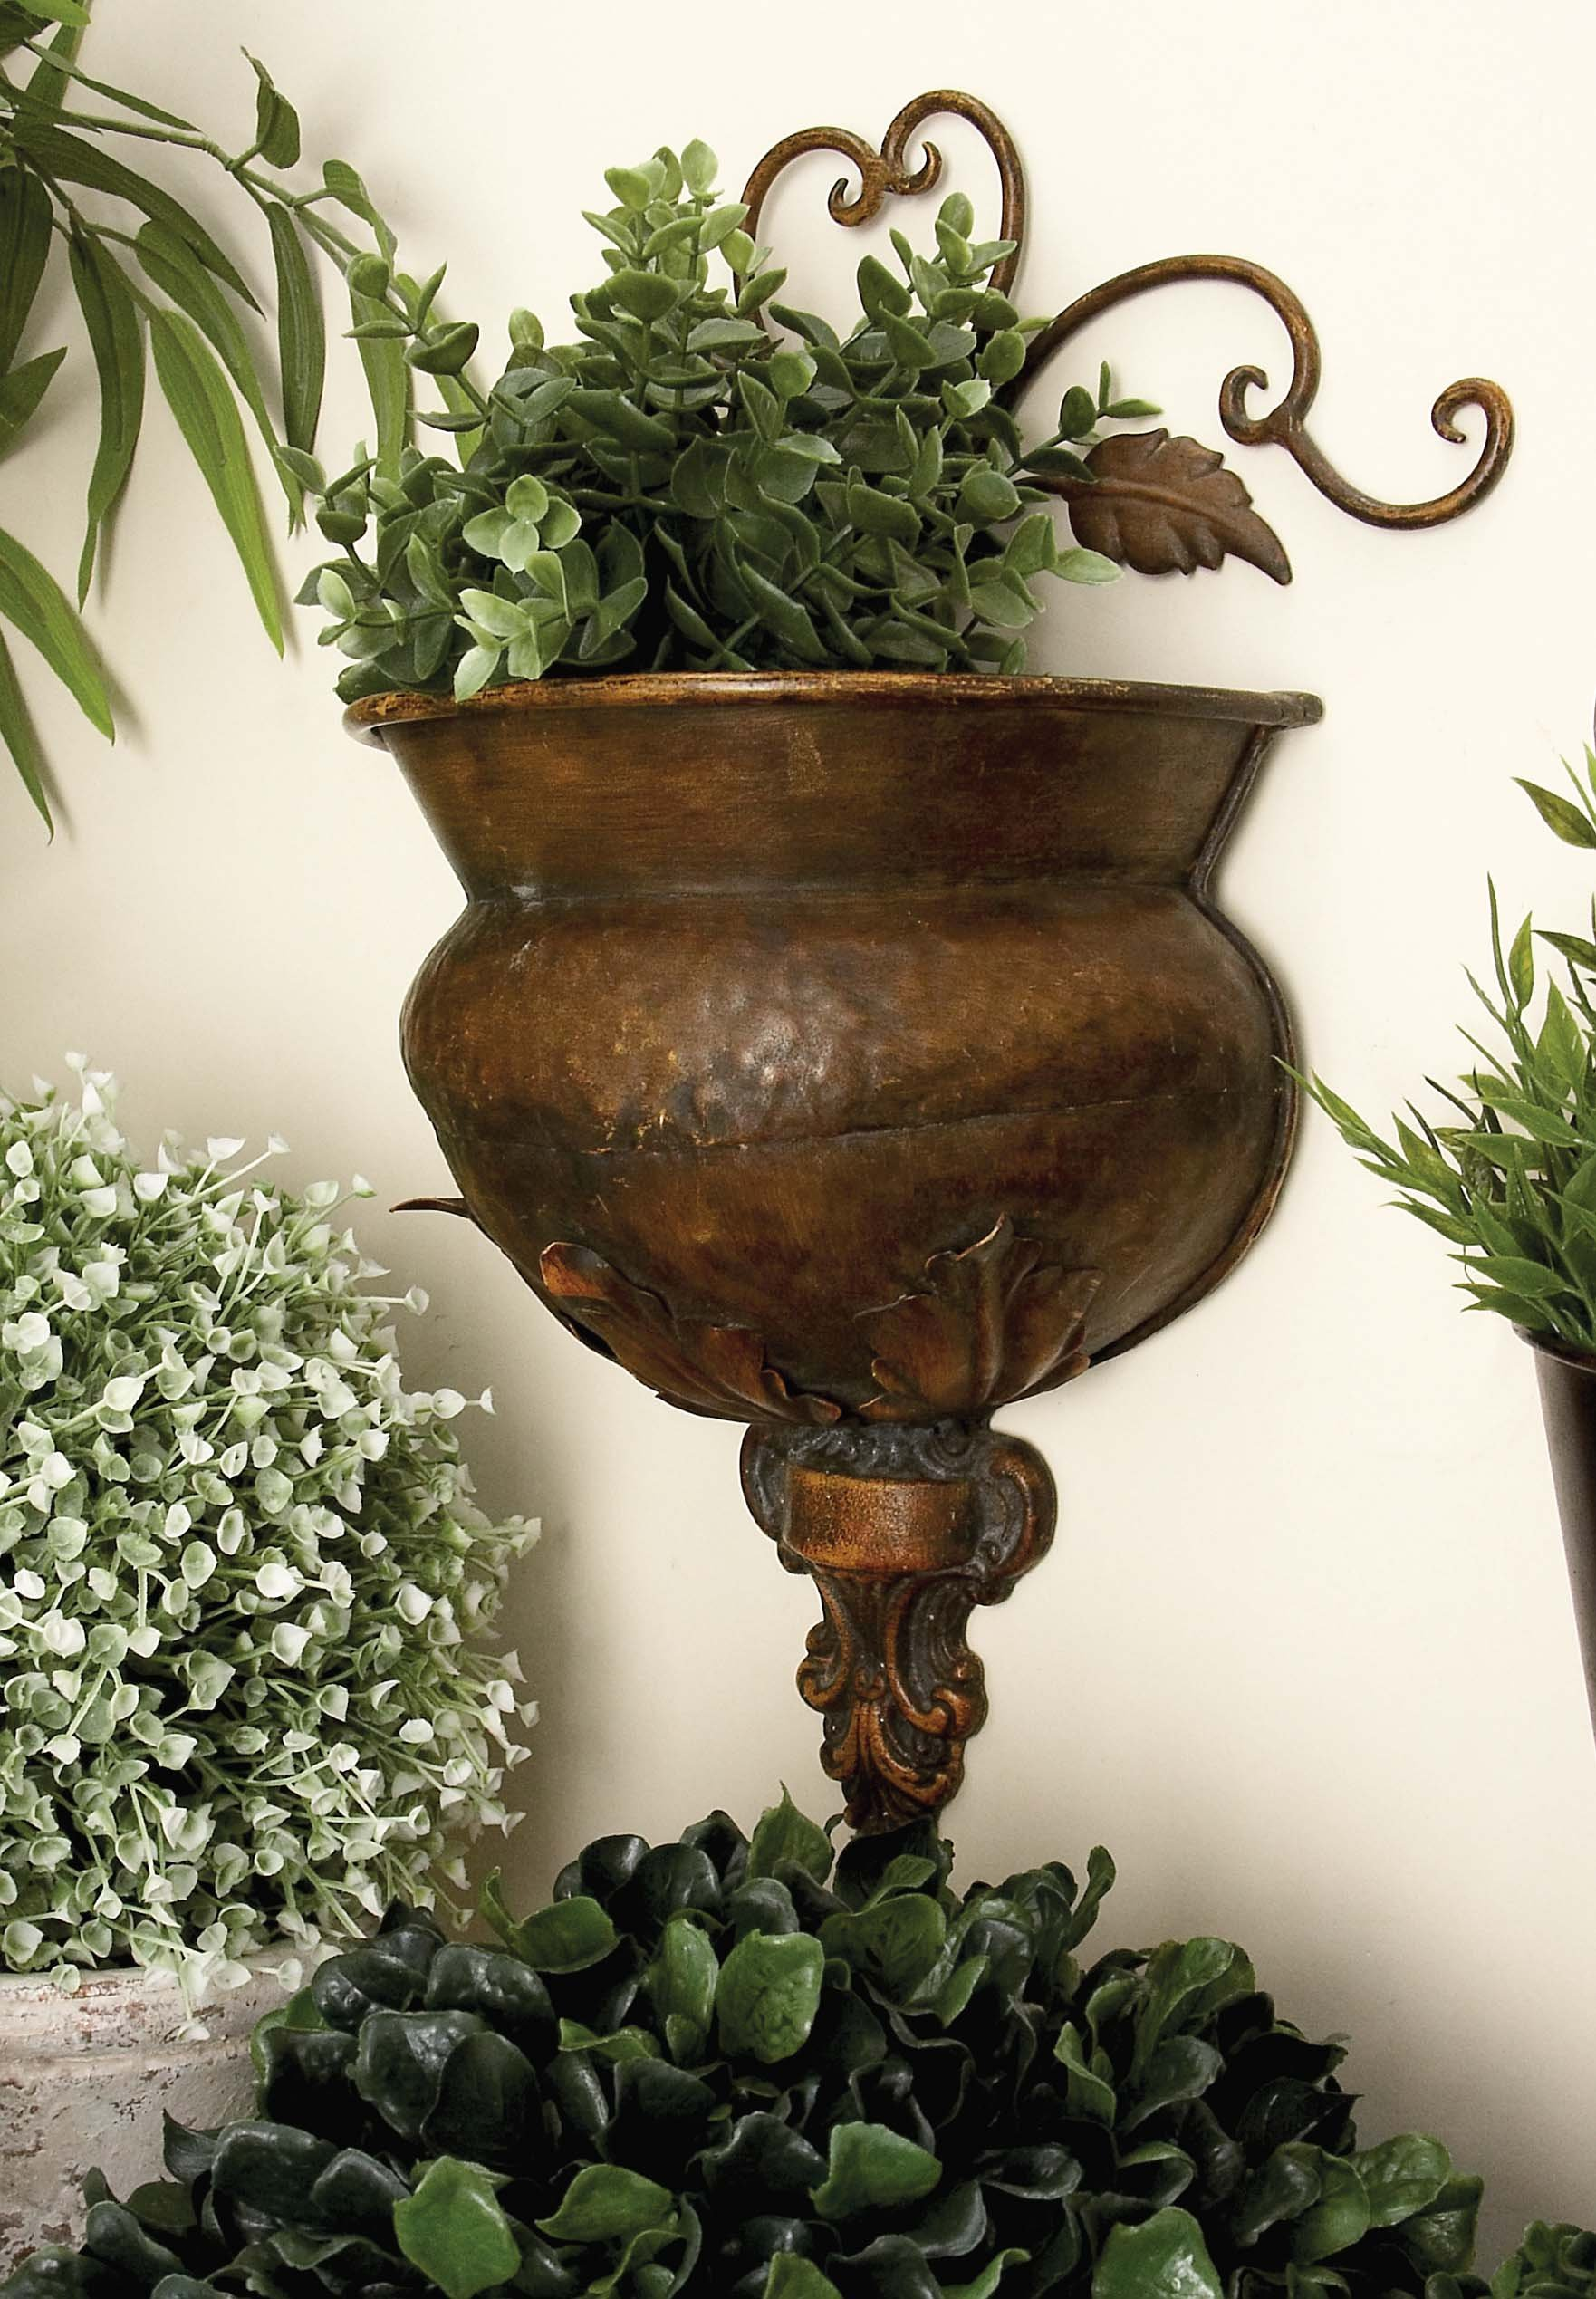 Deco 79 Metal Wall Planter Rare to Find Elsewhere Utility Decor by Deco 79